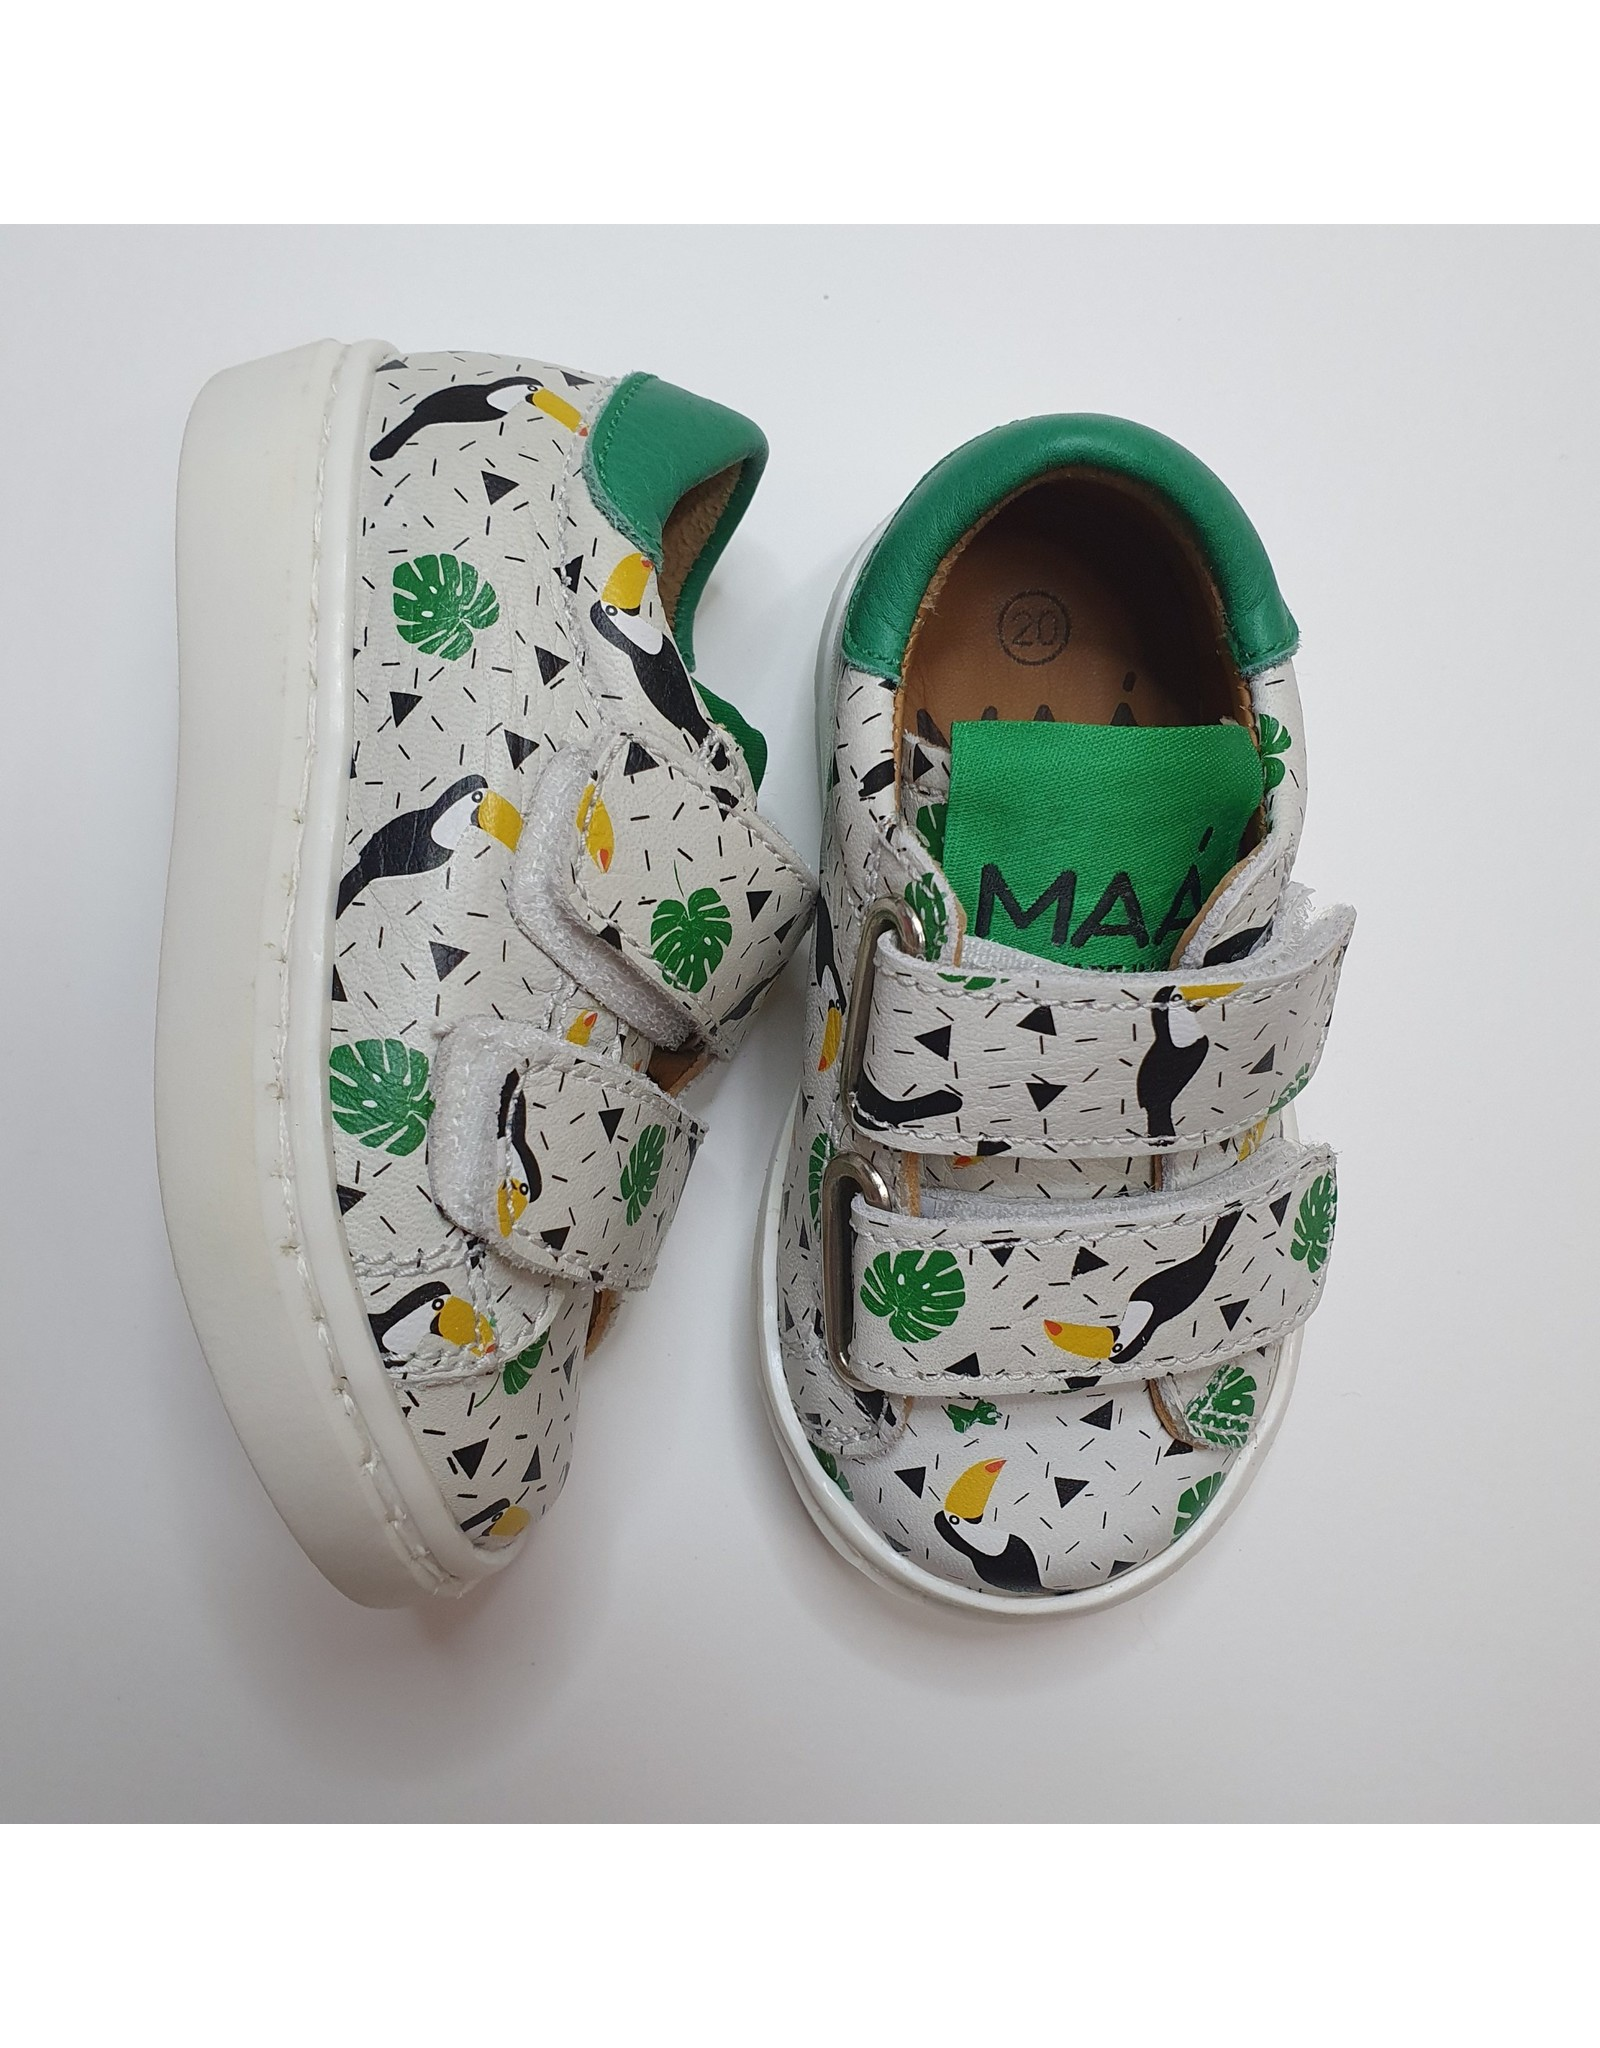 MAÁ sneaker white and green toucan